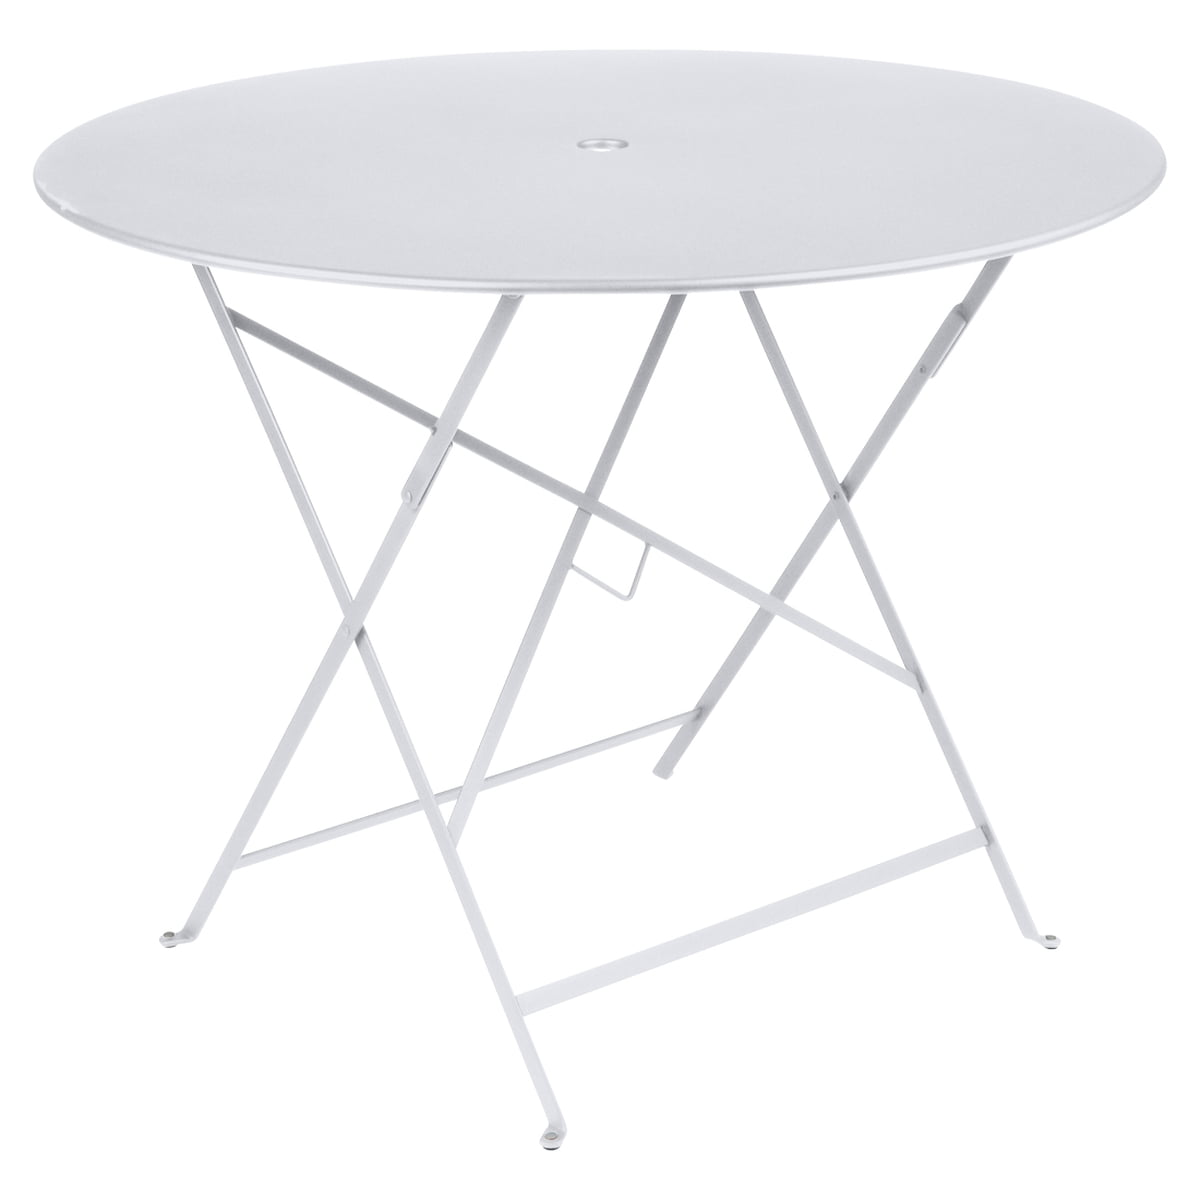 Bistro Folding Table Ø 96 Cm By Fermob In Cotton White